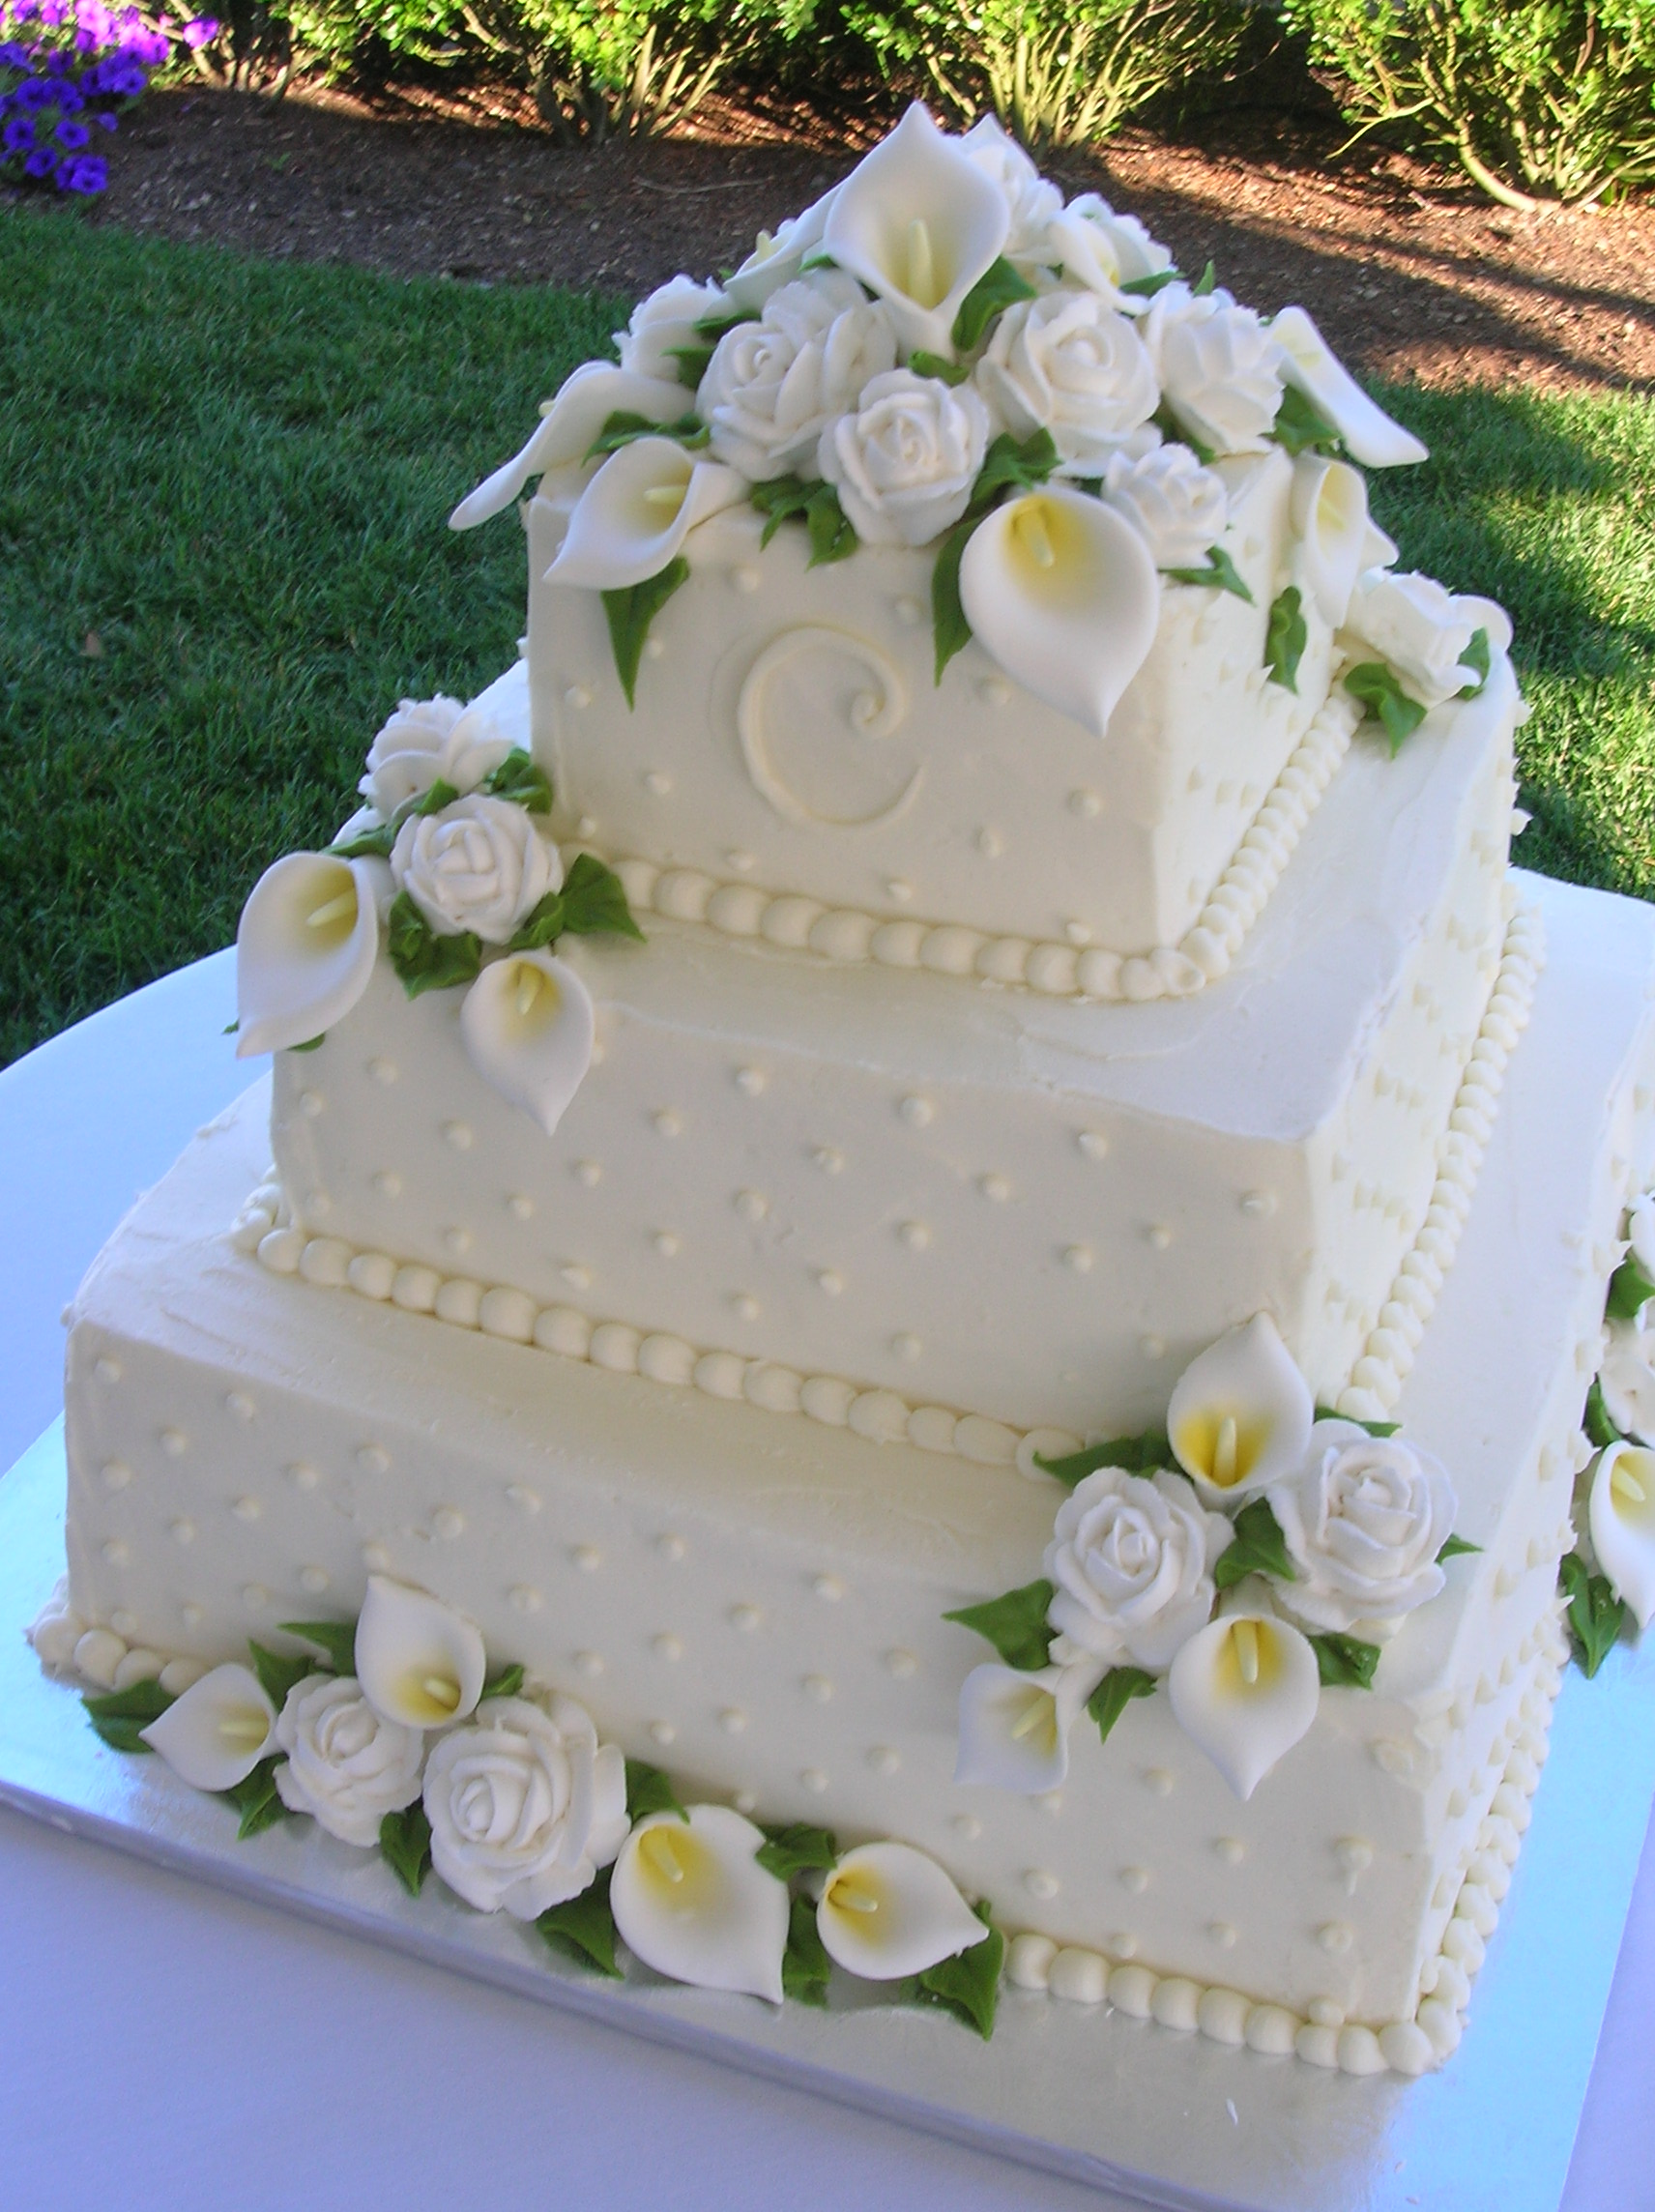 wedding cakes with lilies and roses s sweetcakes summer 26057